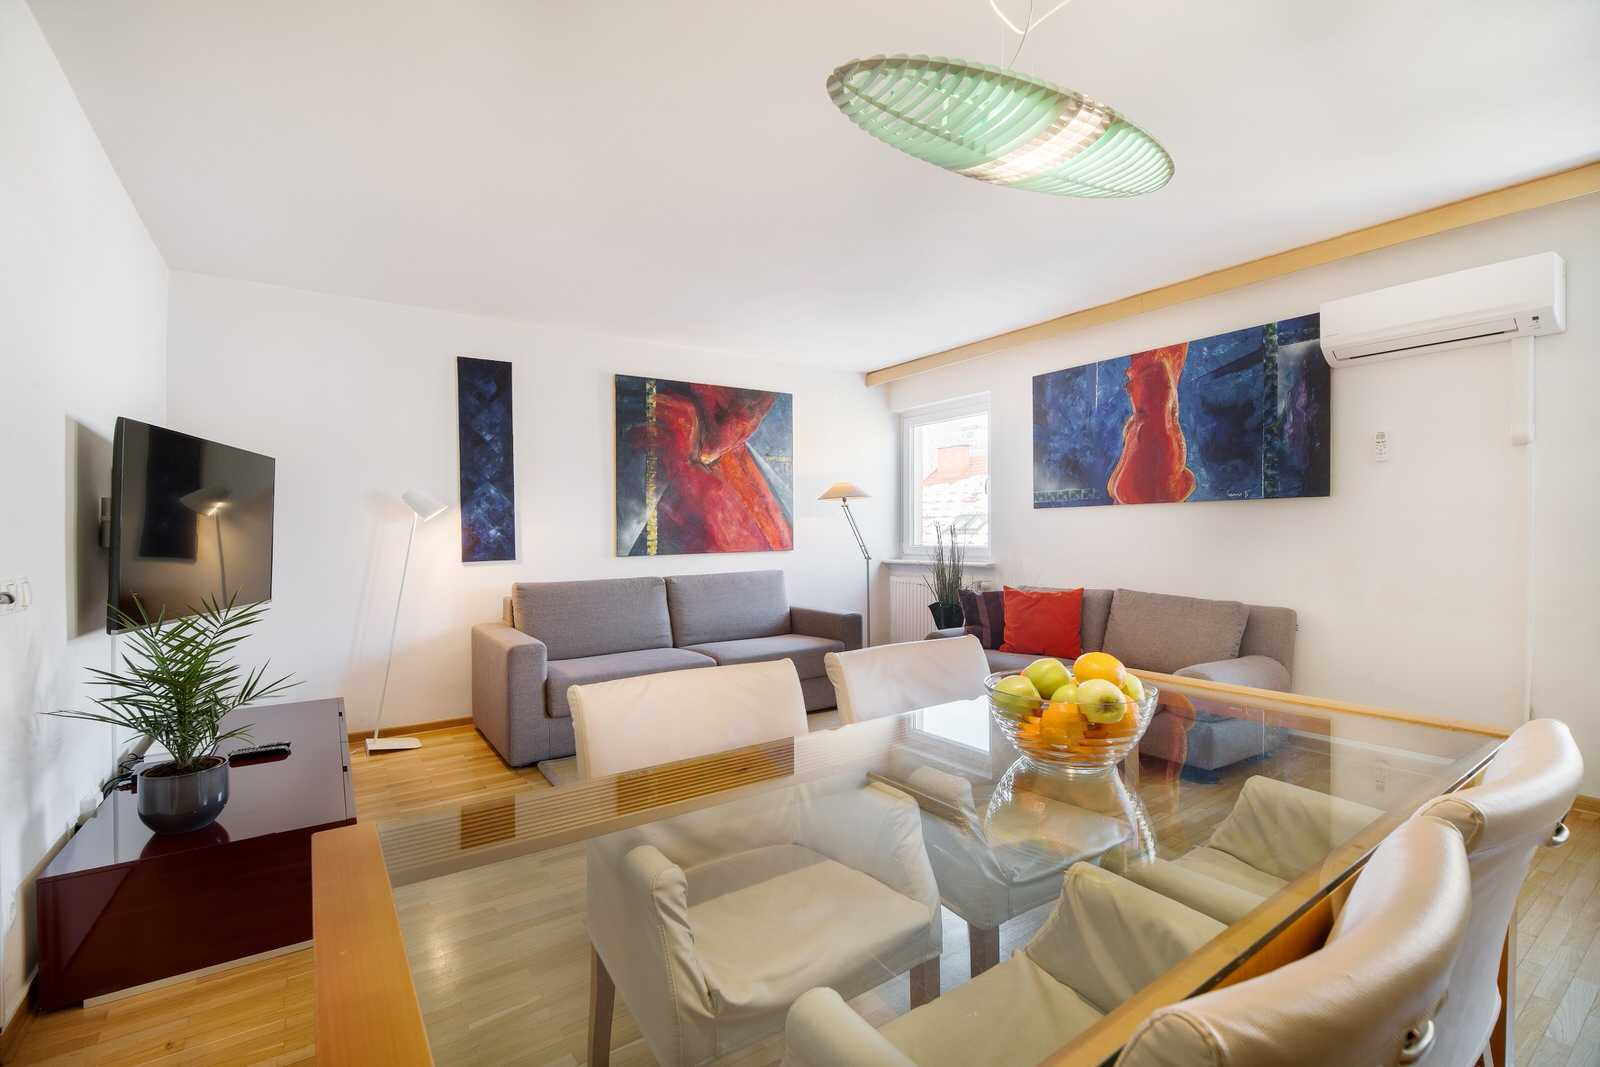 Ljubljana rental apartment Dalmatinova - living area with a big flat screen TV with cable channels and other features.